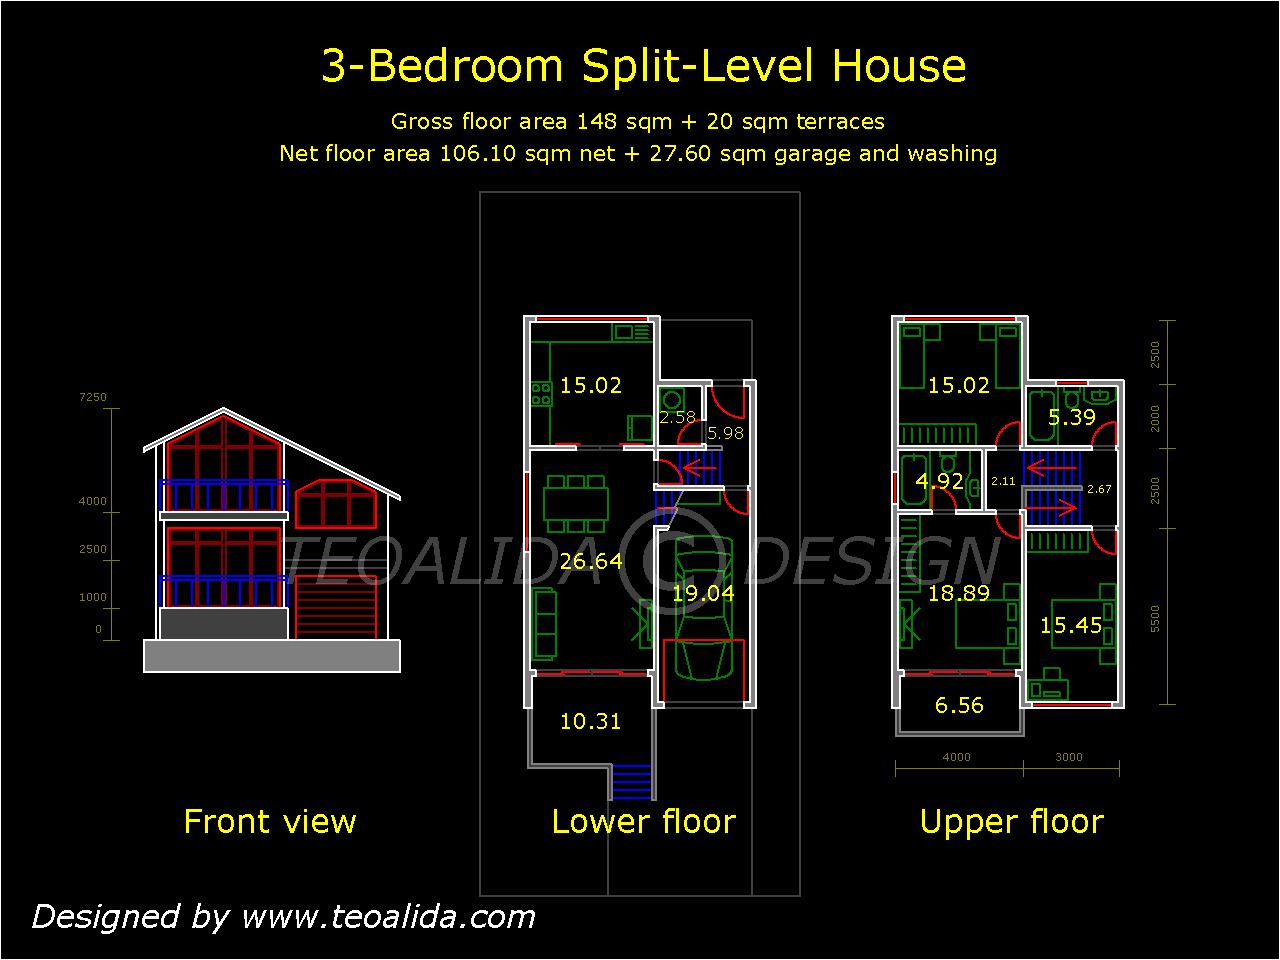 Split level home with 3 bedrooms and garage. House floor plans   custom house design services for you